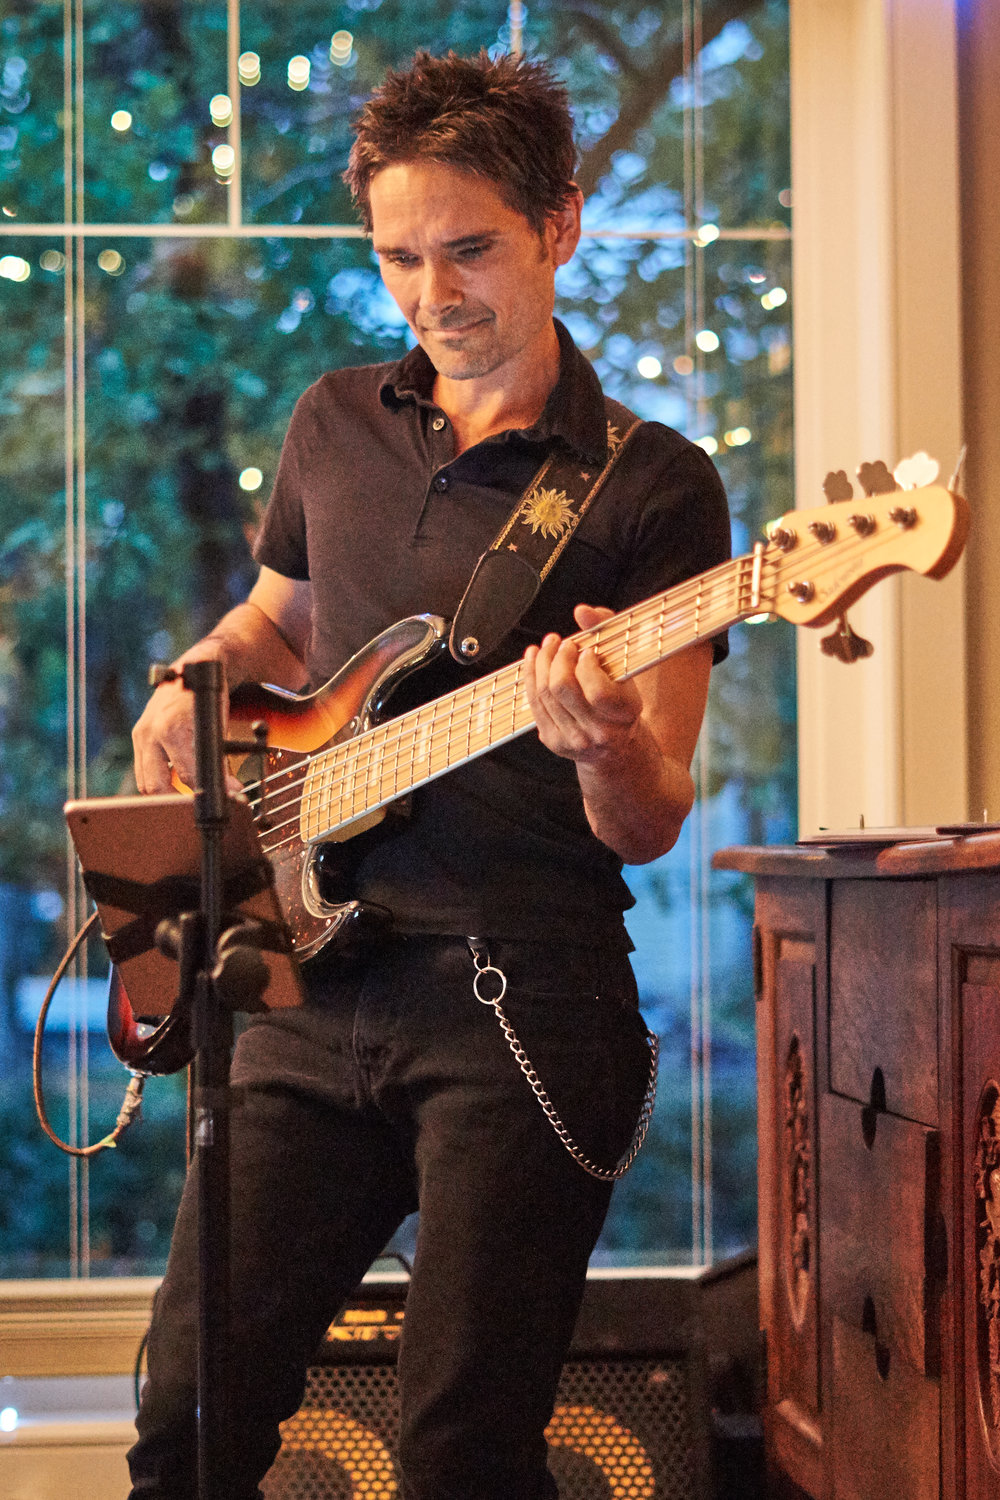 Bassist Dustin Roy